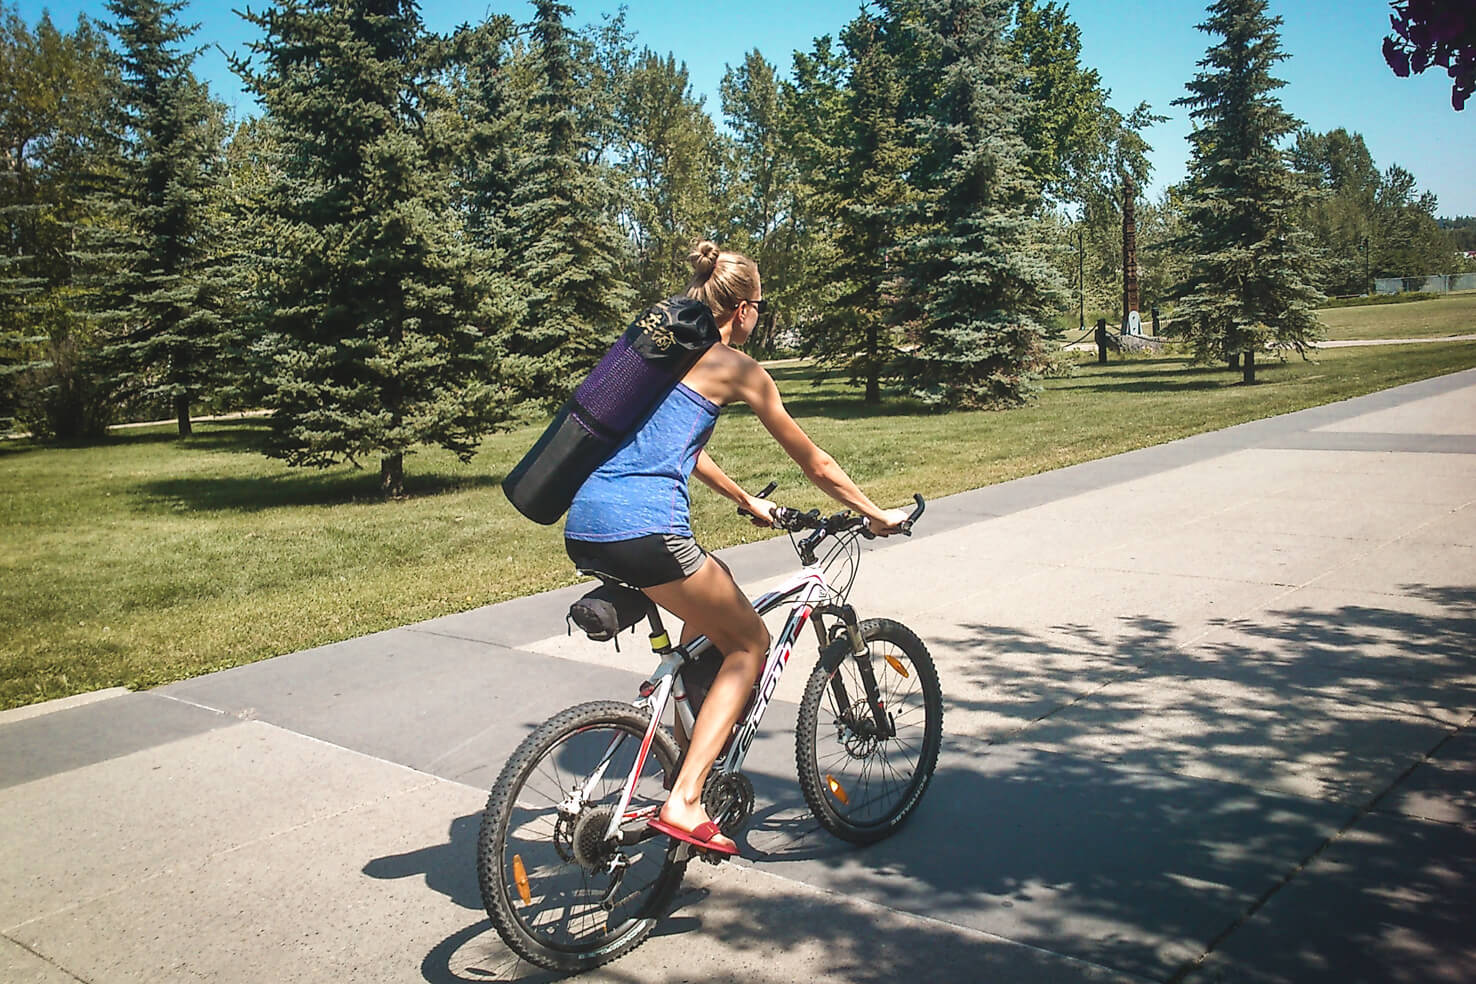 Things to do in Calgary in summer - Try yoga class in the park